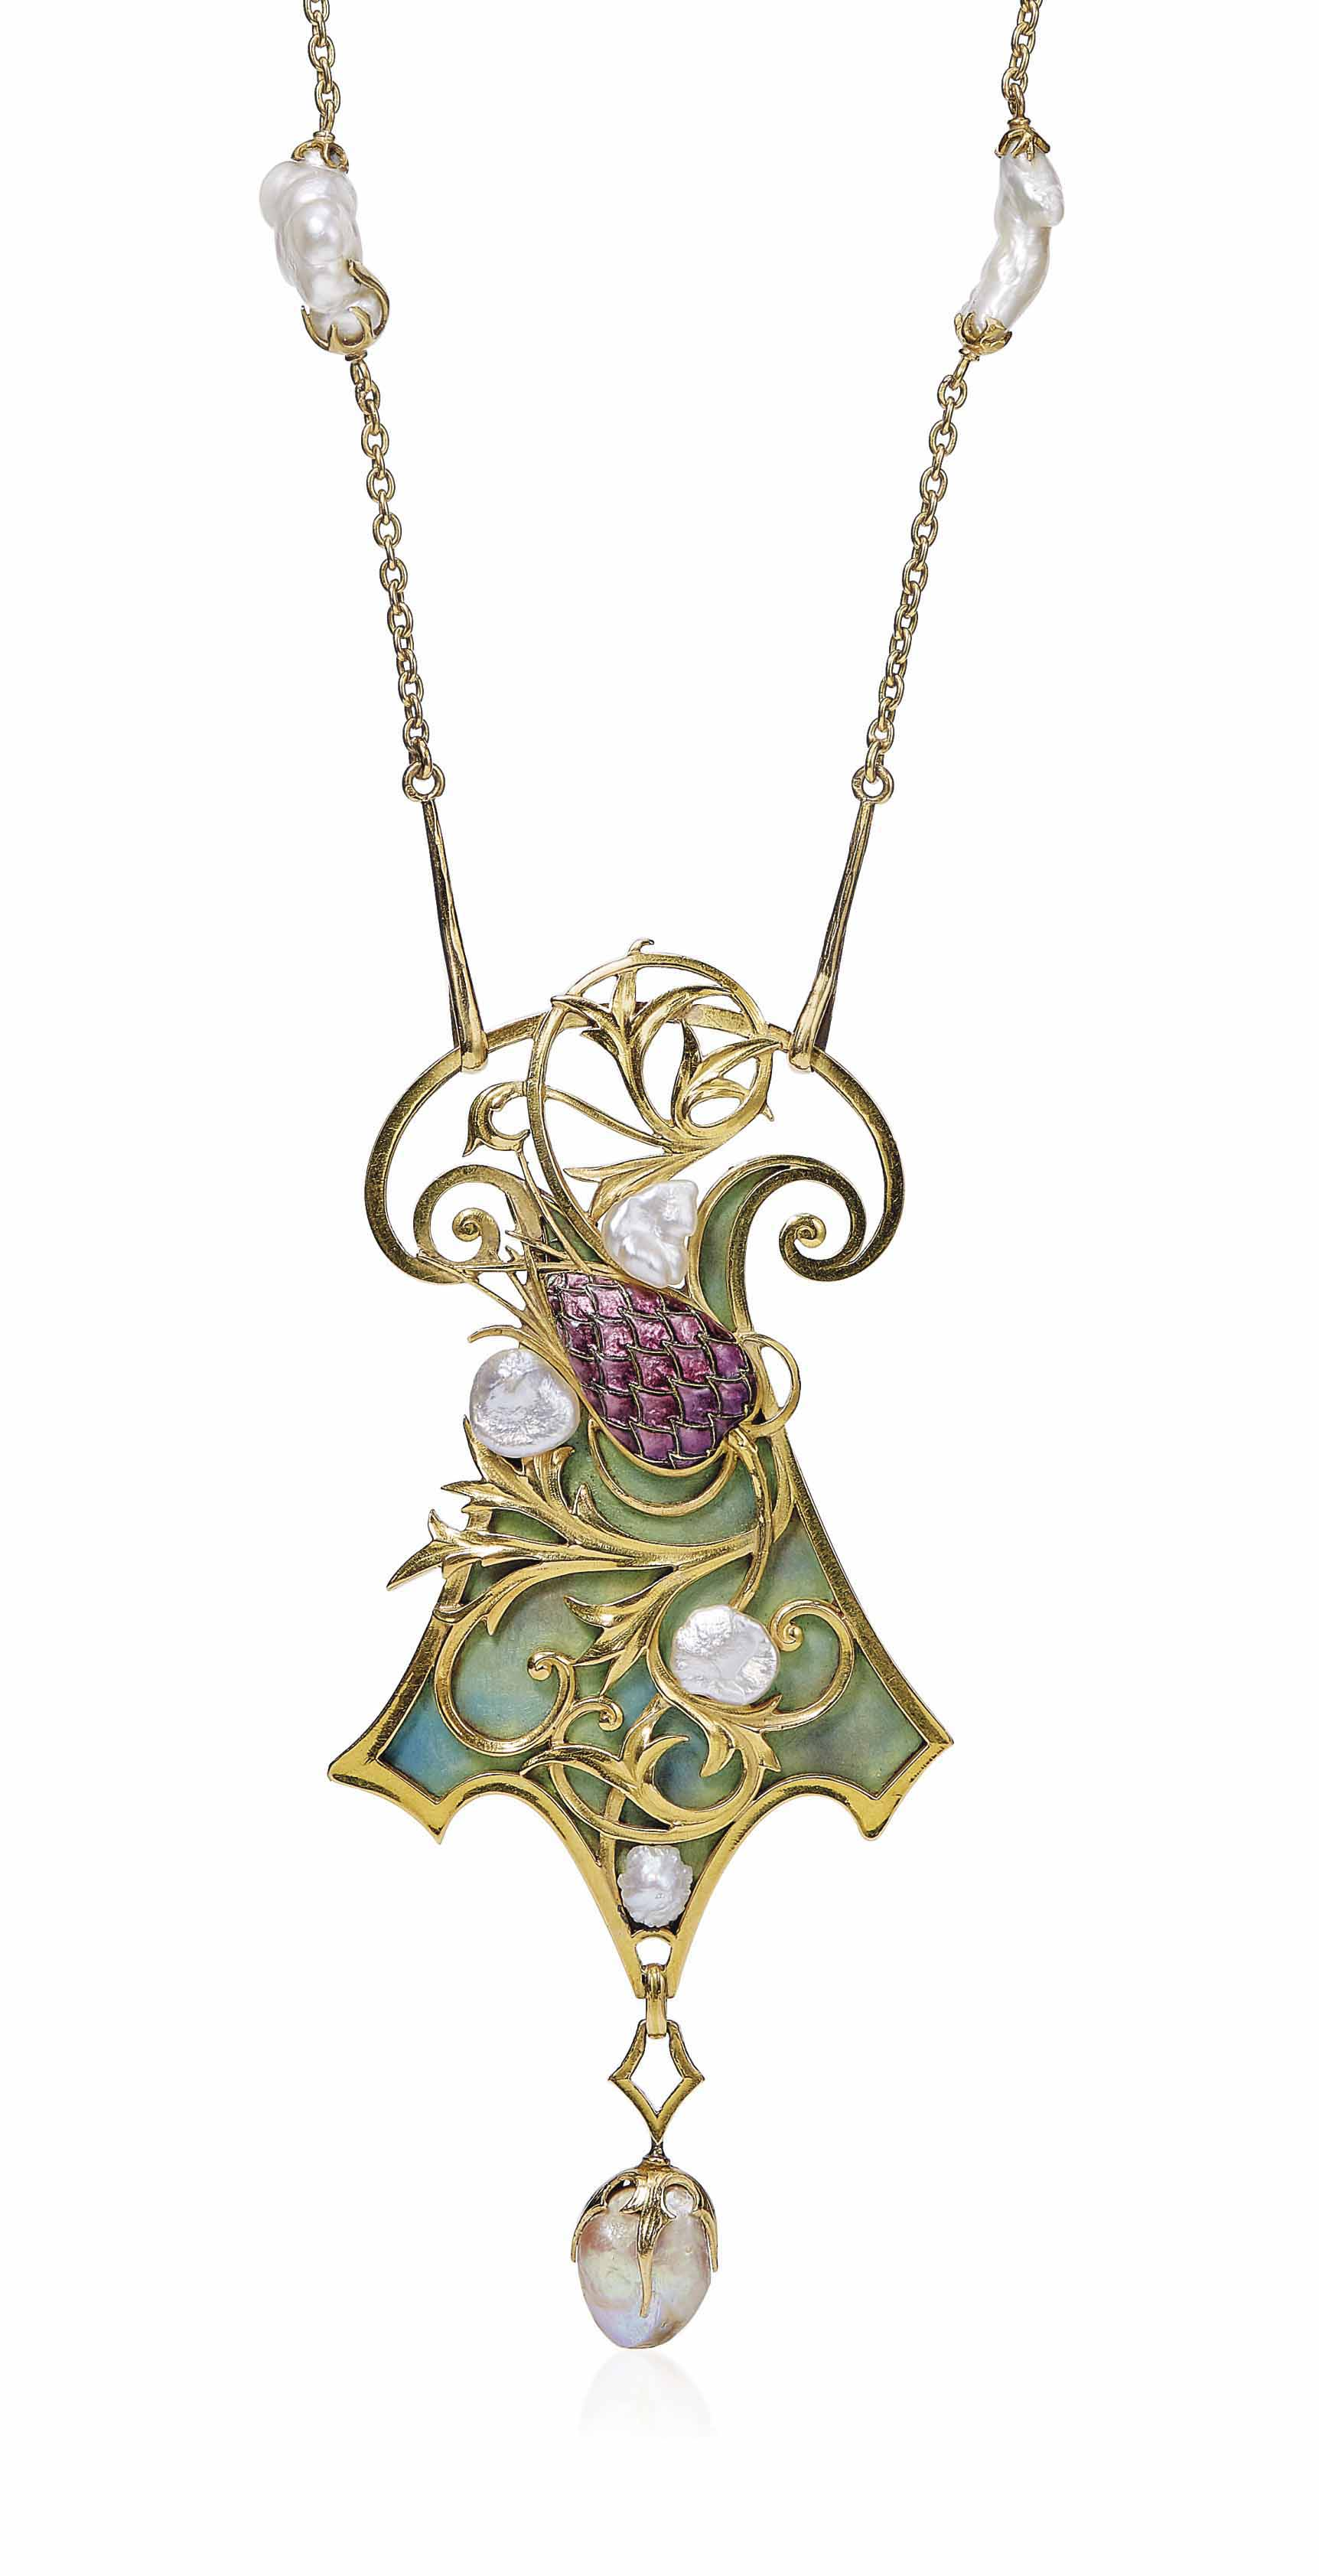 AN ART NOUVEAU ENAMEL AND PEARL PENDENT NECKLACE, BY GEORGES FOUQUET